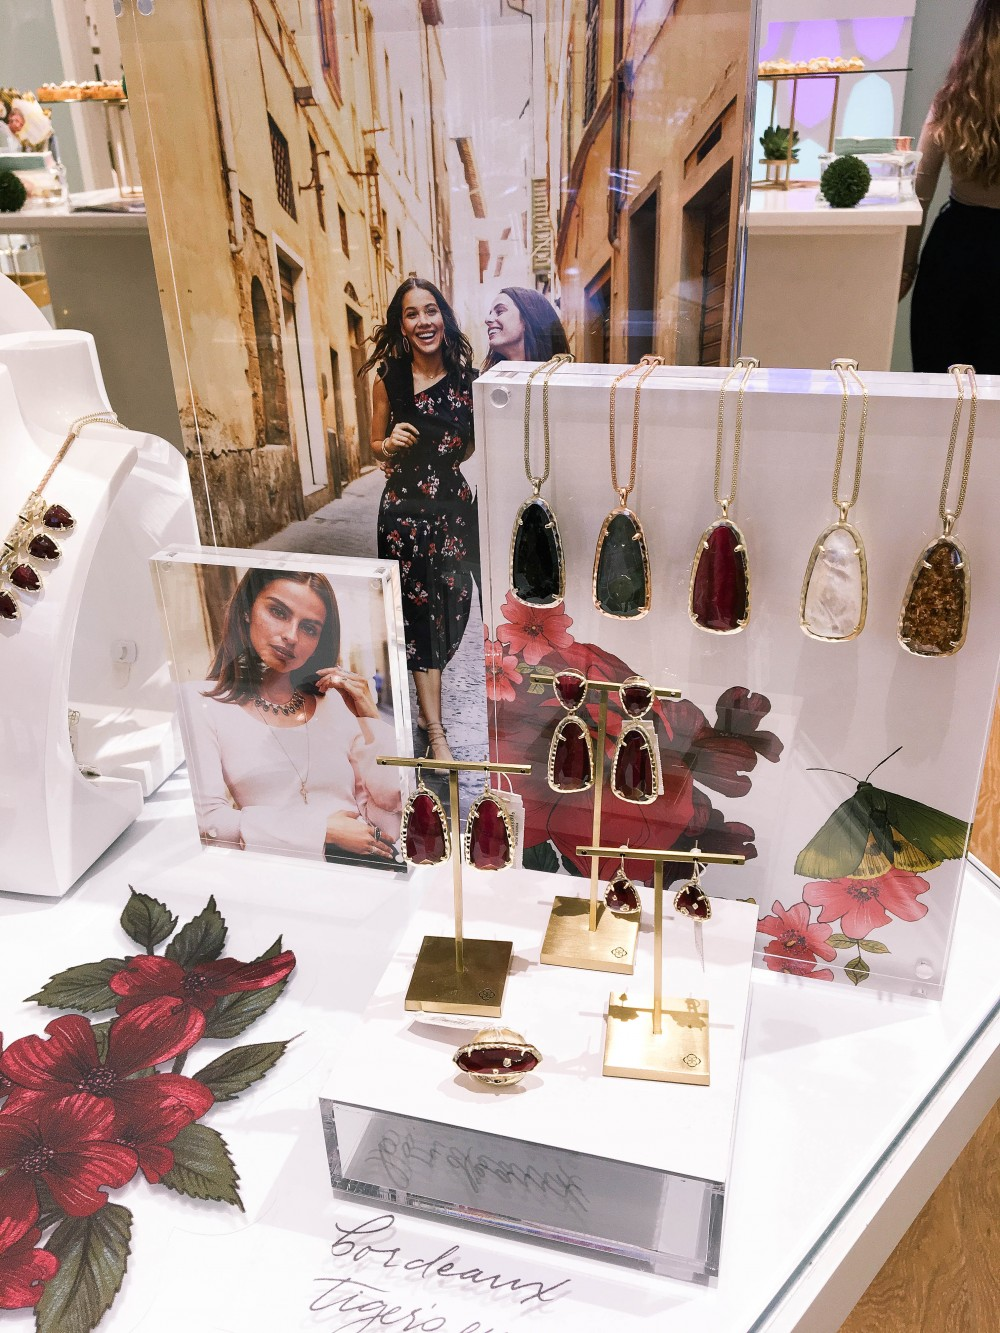 Kendra Scott Fall 2017 Launch Party-Kendra Scott Fall 2017 Collection-Whisk Away to Florence-Inspired by Italy-Bay Area Events-Santana Row-Have Need Want 8